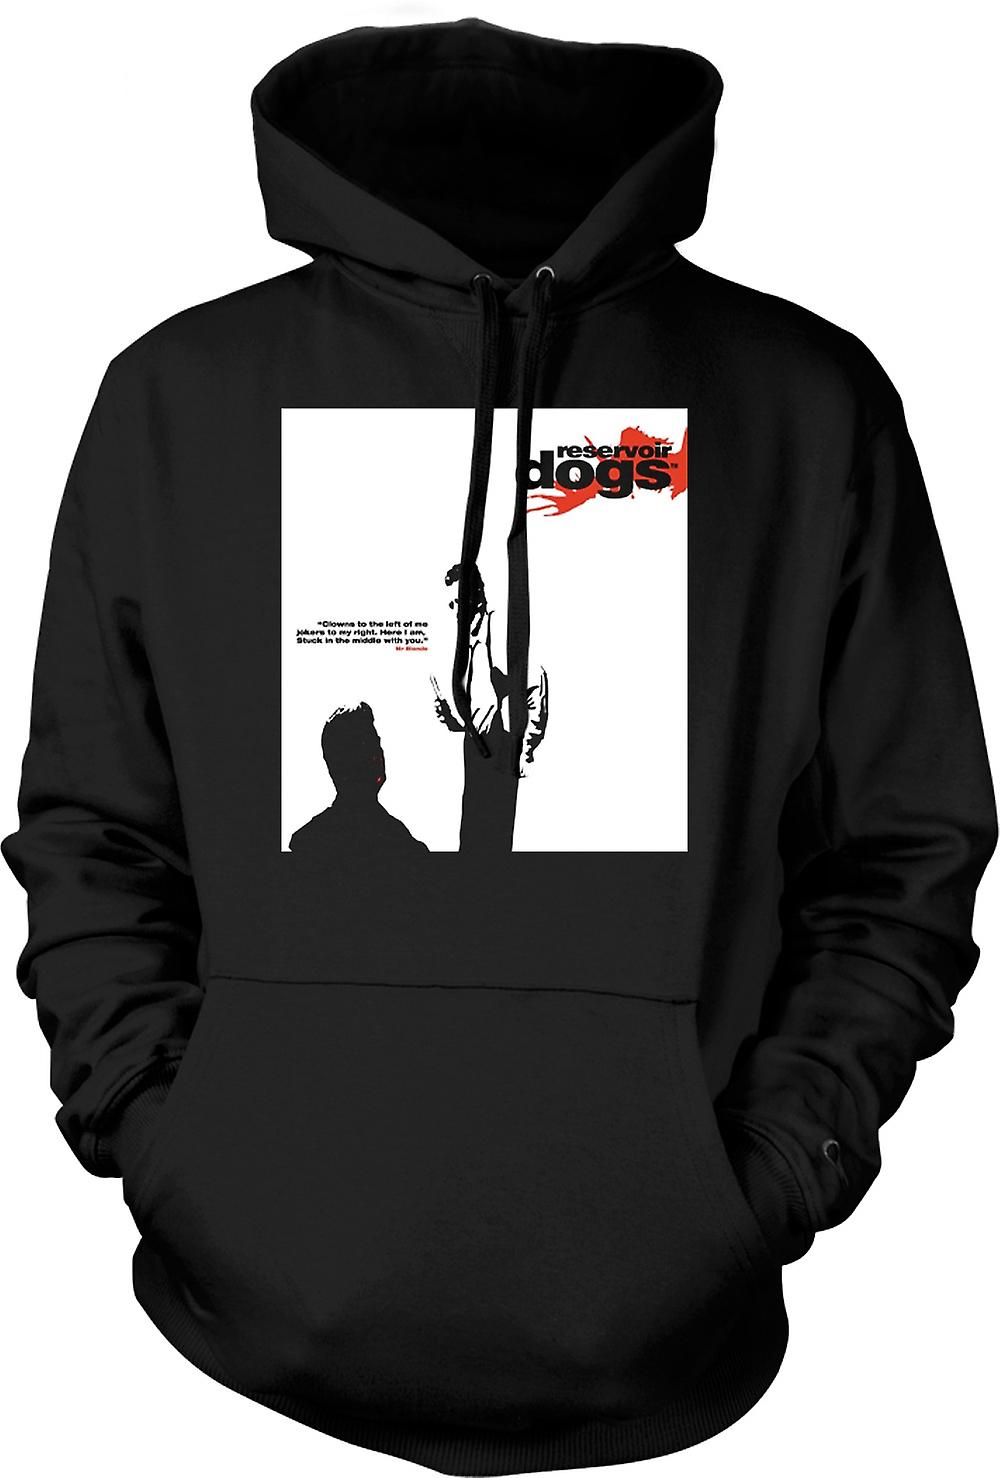 Mens Hoodie - Reservoir Dogs - Clowns links